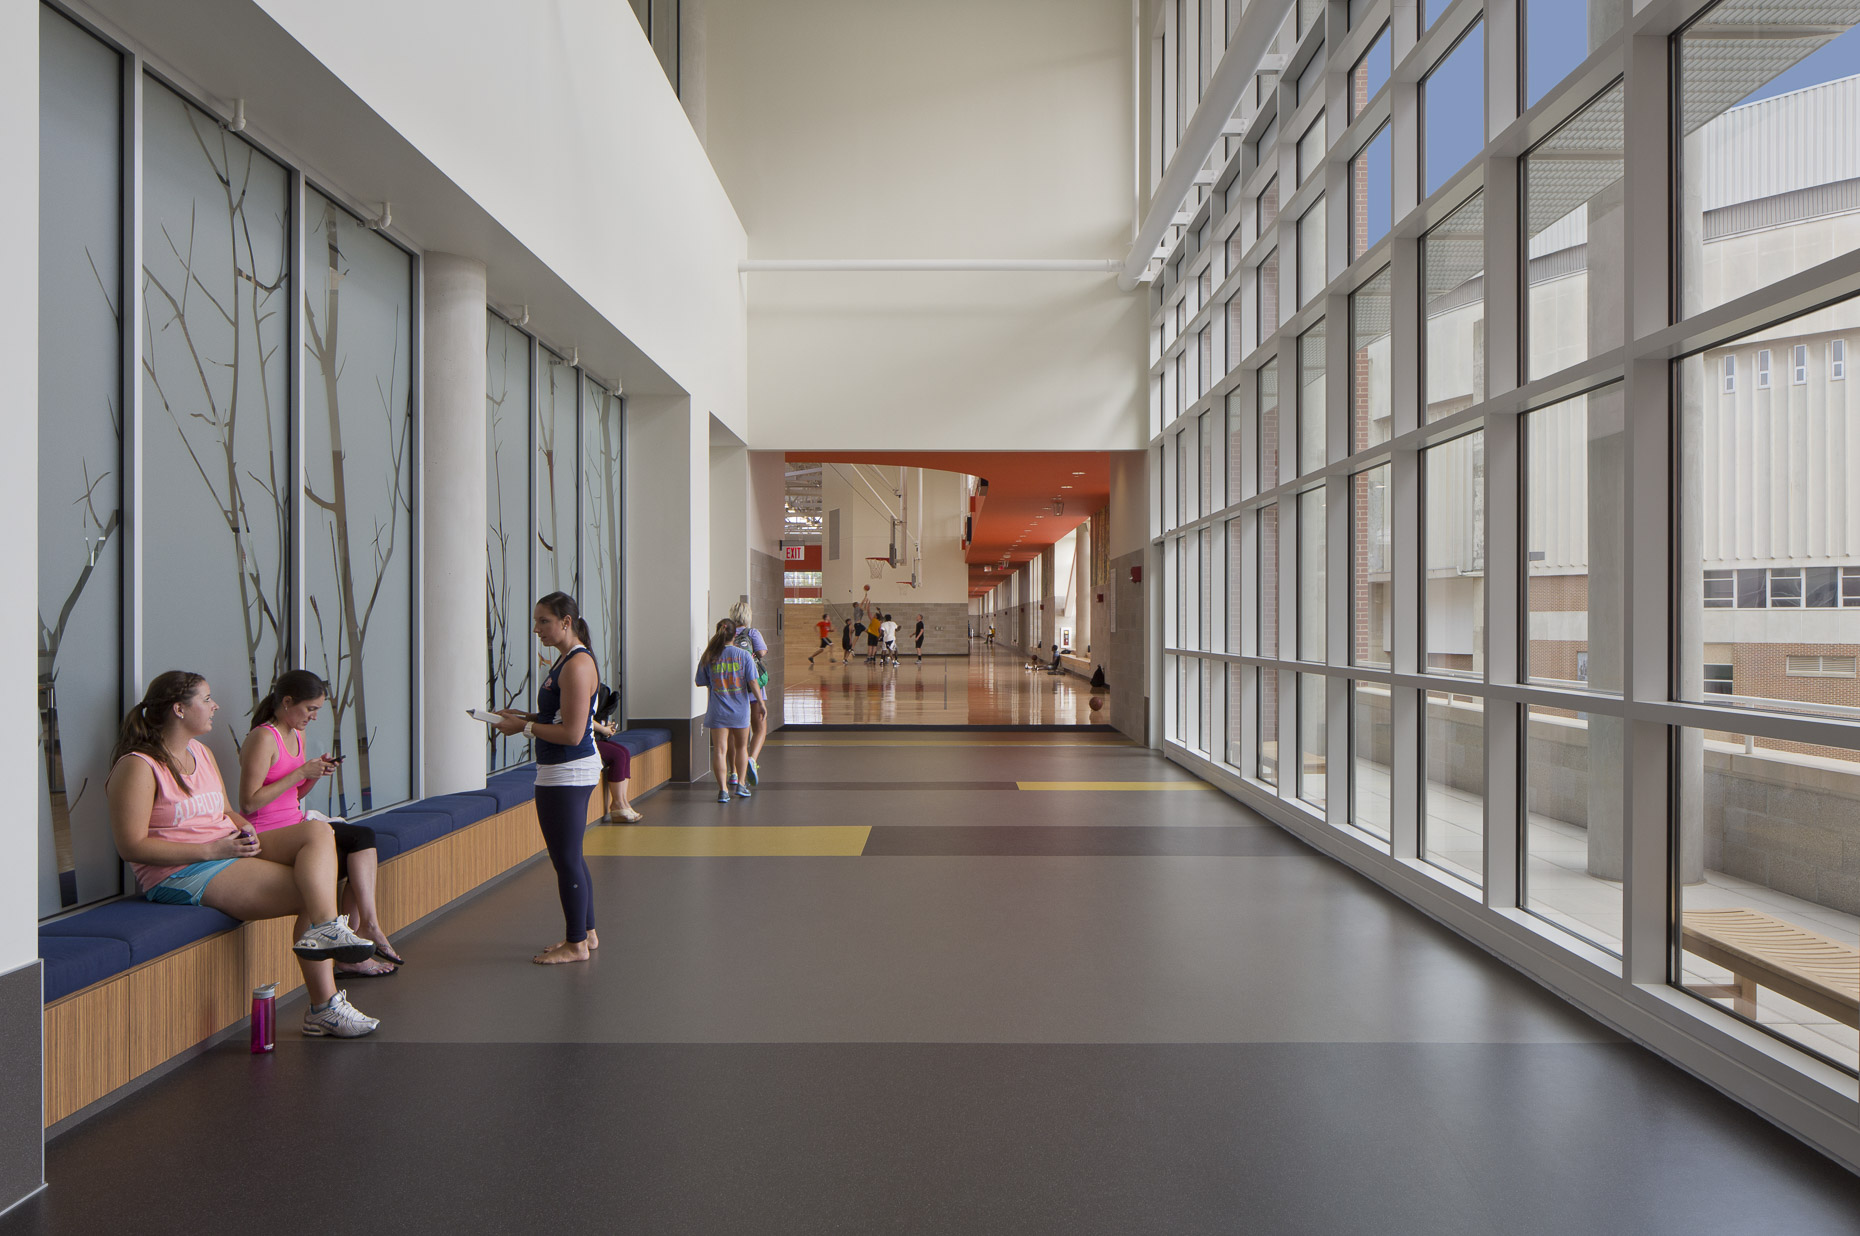 AU Recreation & Wellness Center by HOK photographed by Brad Feinknopf based in Columbus, Ohio